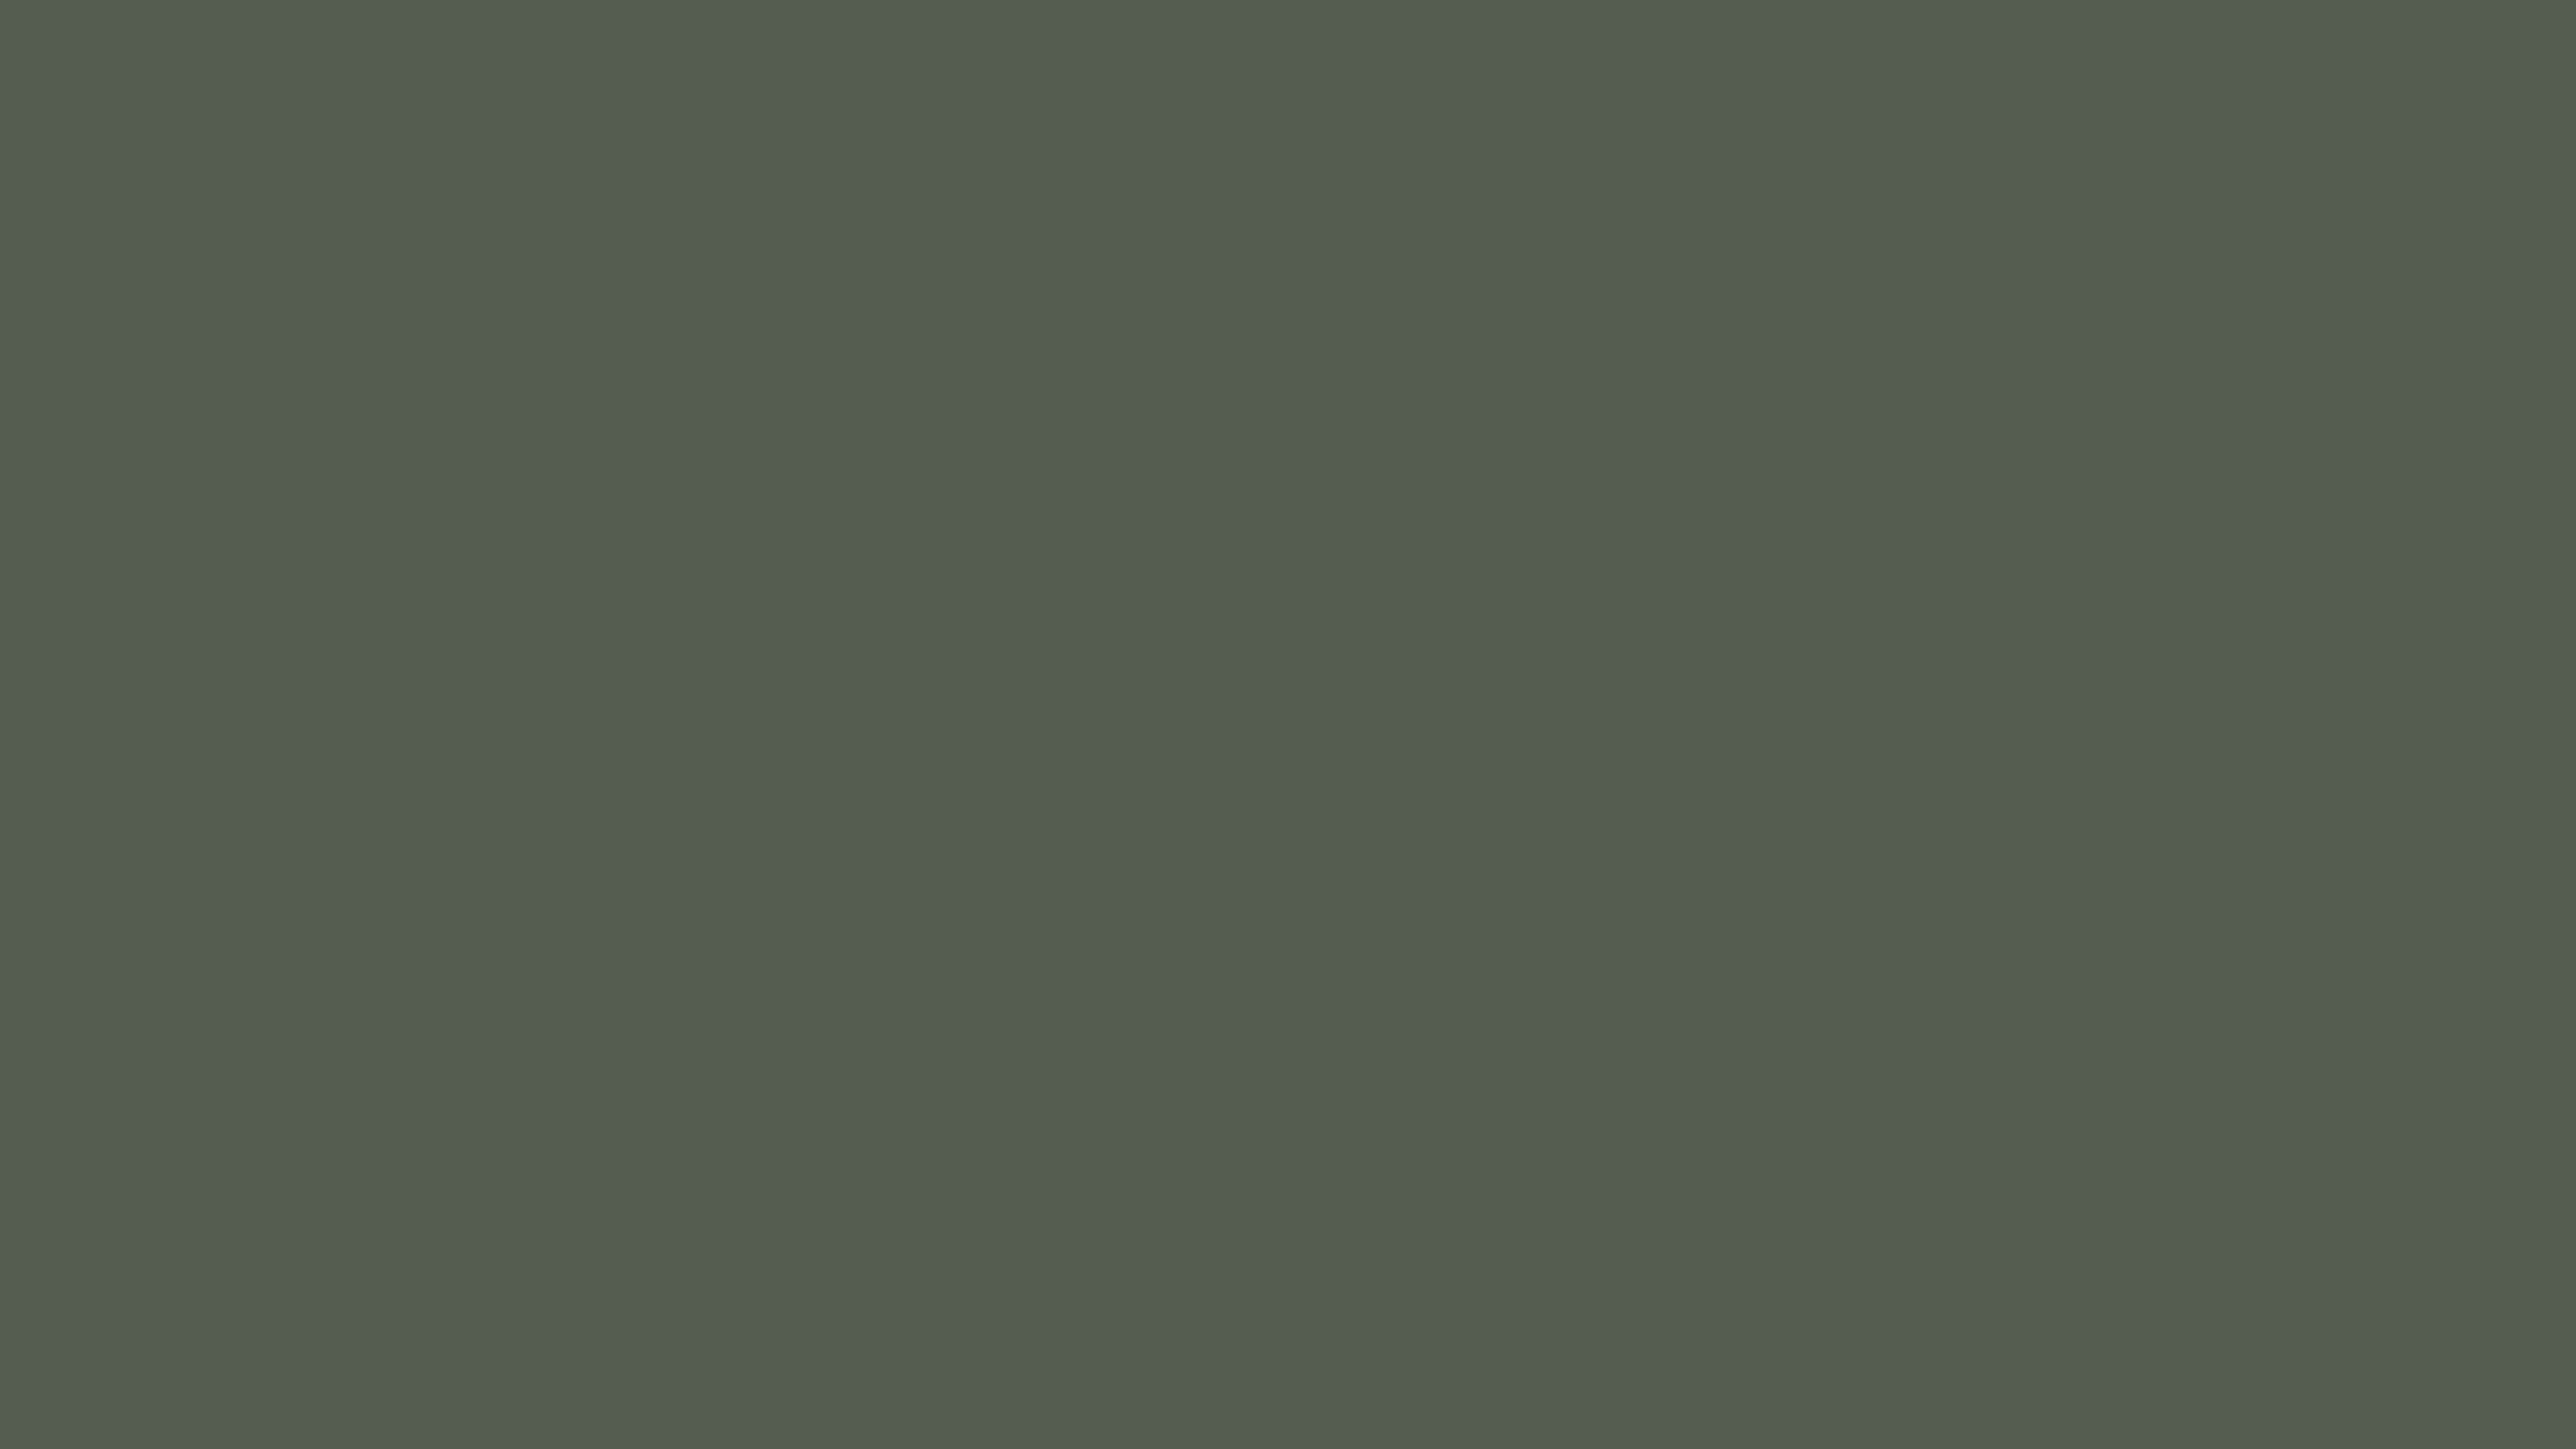 4096x2304 Ebony Solid Color Background